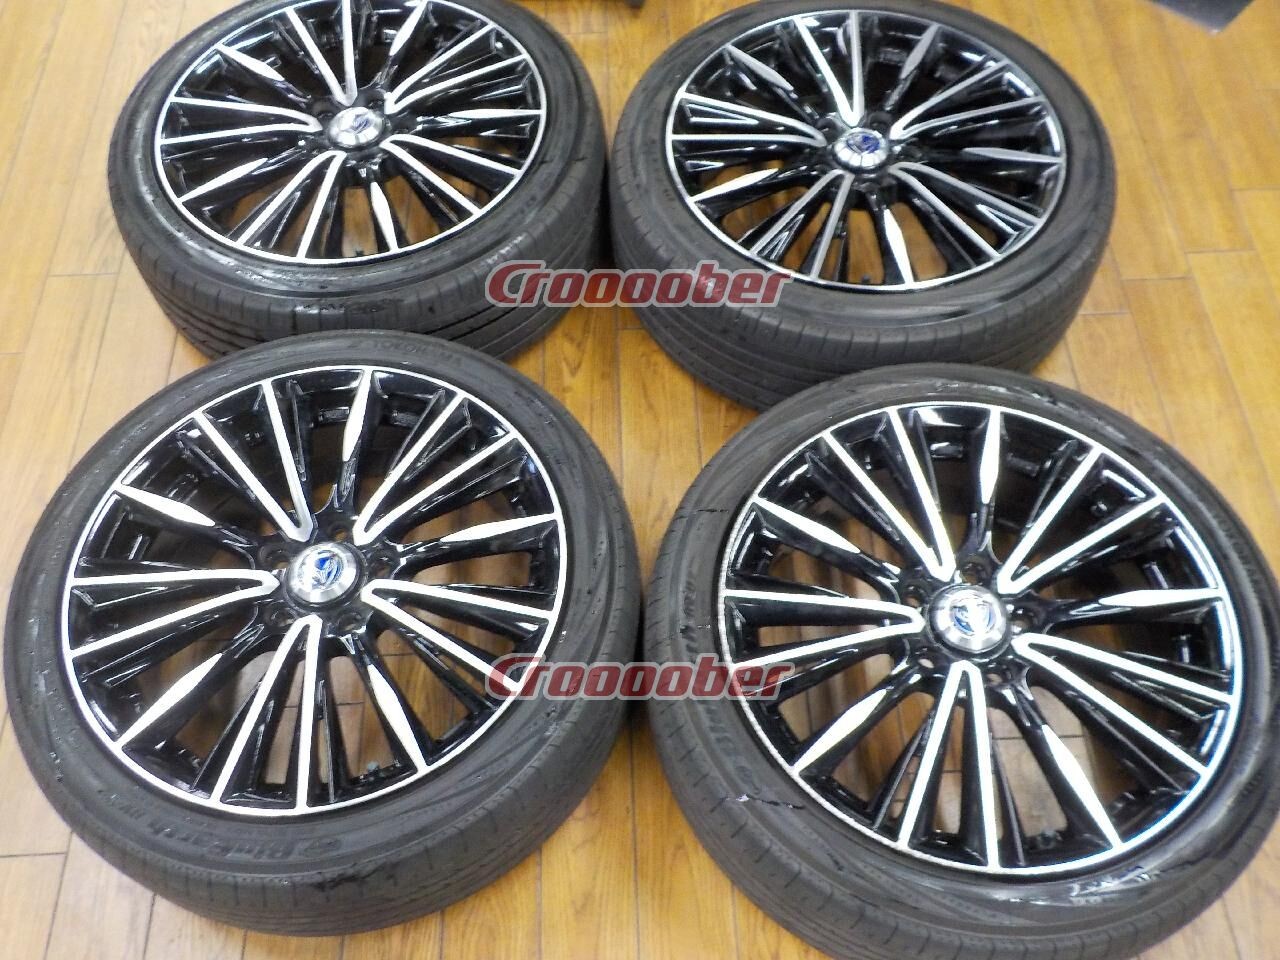 Rv Tires Near Me >> Used Vogue Tires Near Me Rays Versus Stratagia Vogue